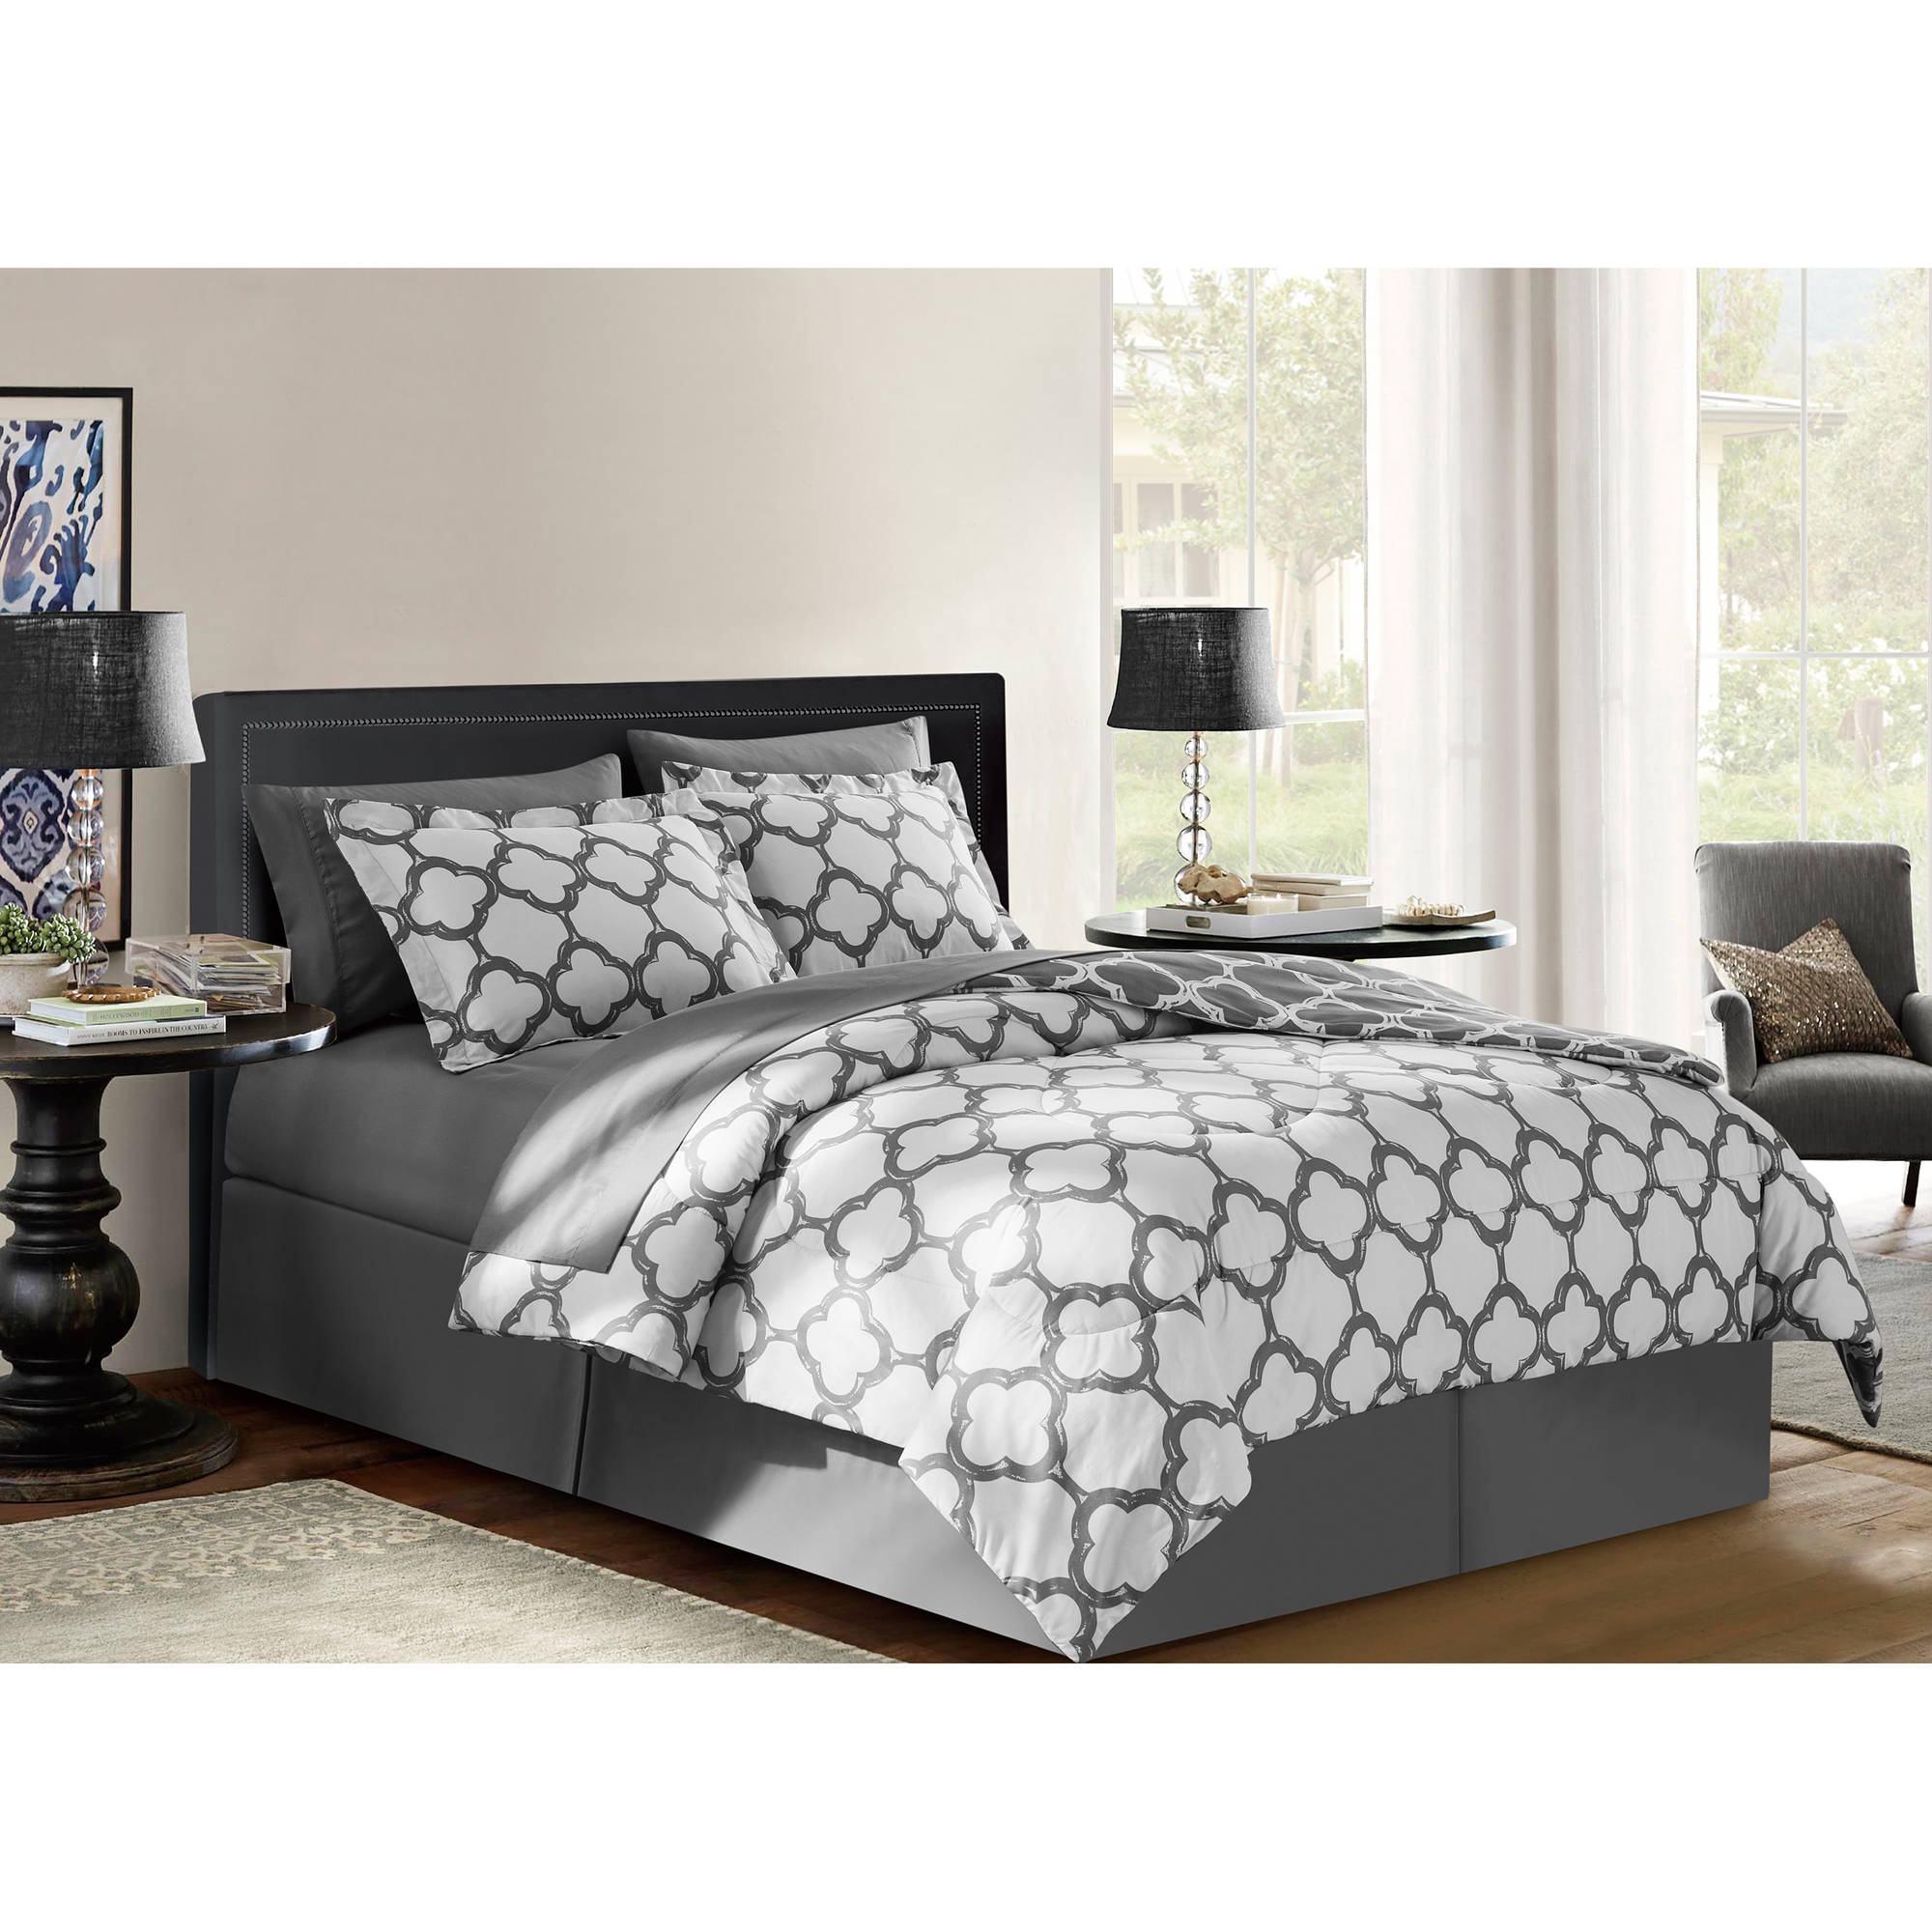 VCNY Home Galaxy Two-Tone Geometric Reversible Bed in a Bag Bedding Set, Shams and Sheet Set Included